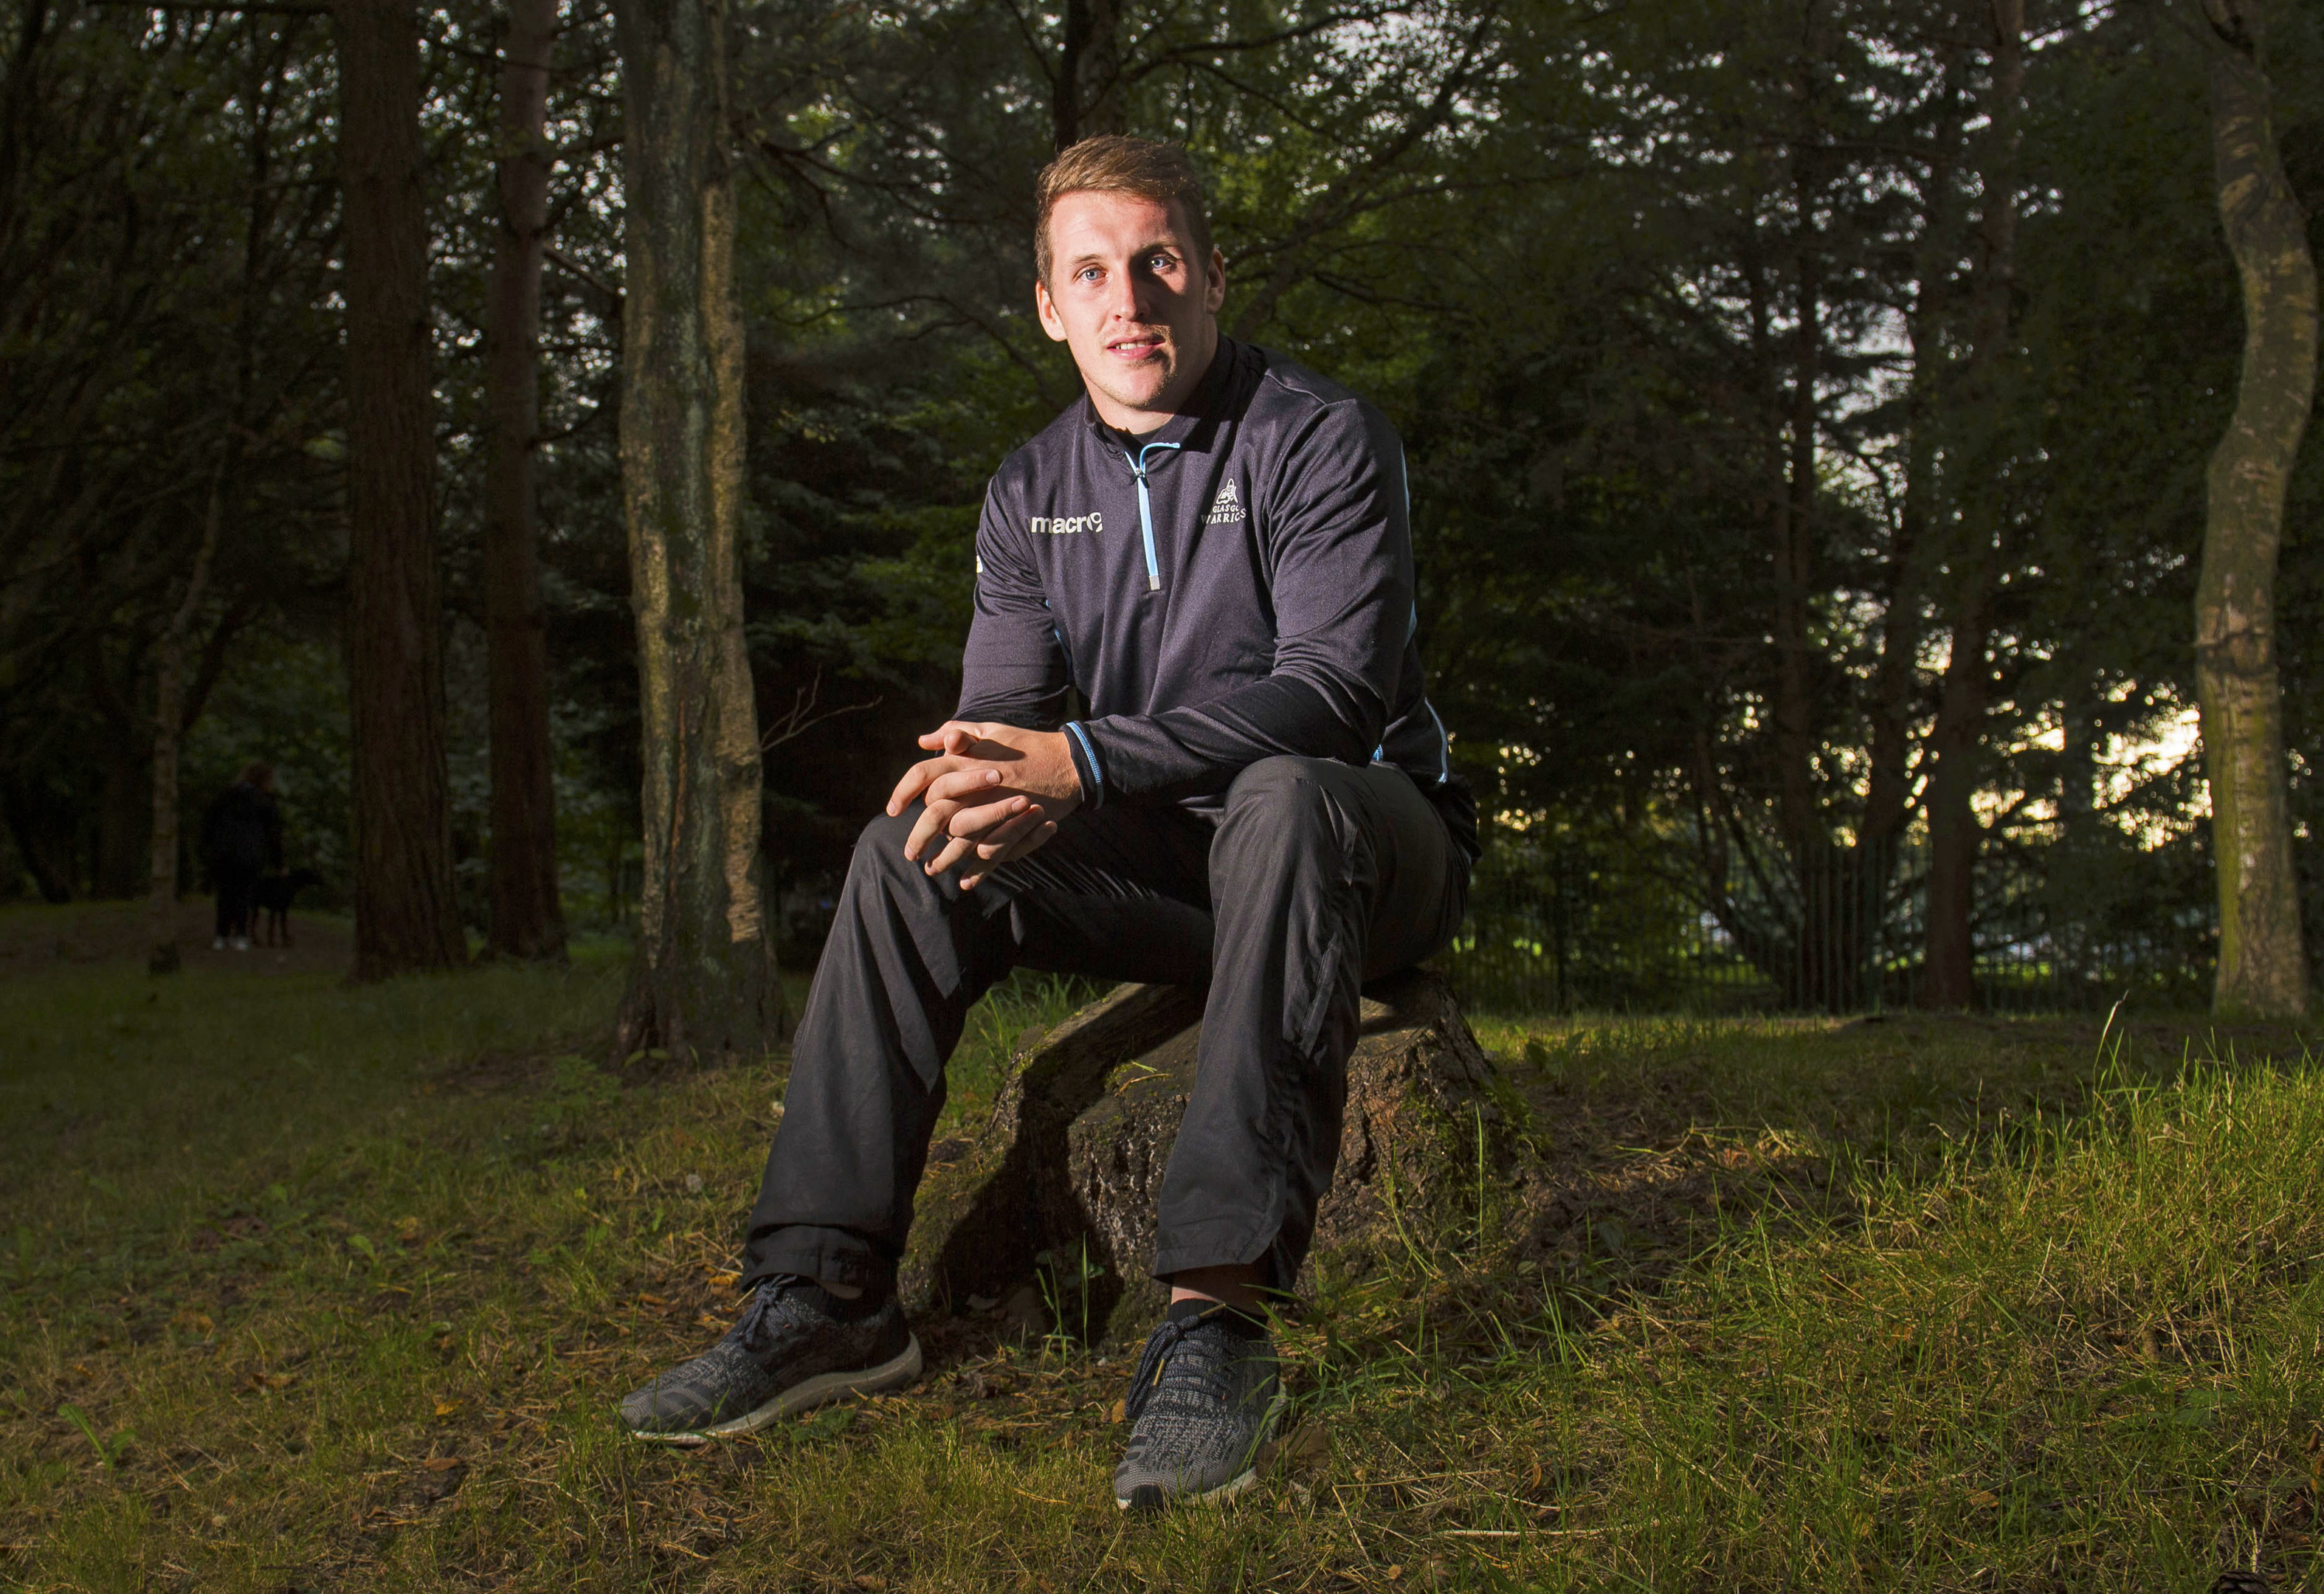 Olympic medallist Mark Bennett is back for the Glagsow Warriors against Ulster this week.